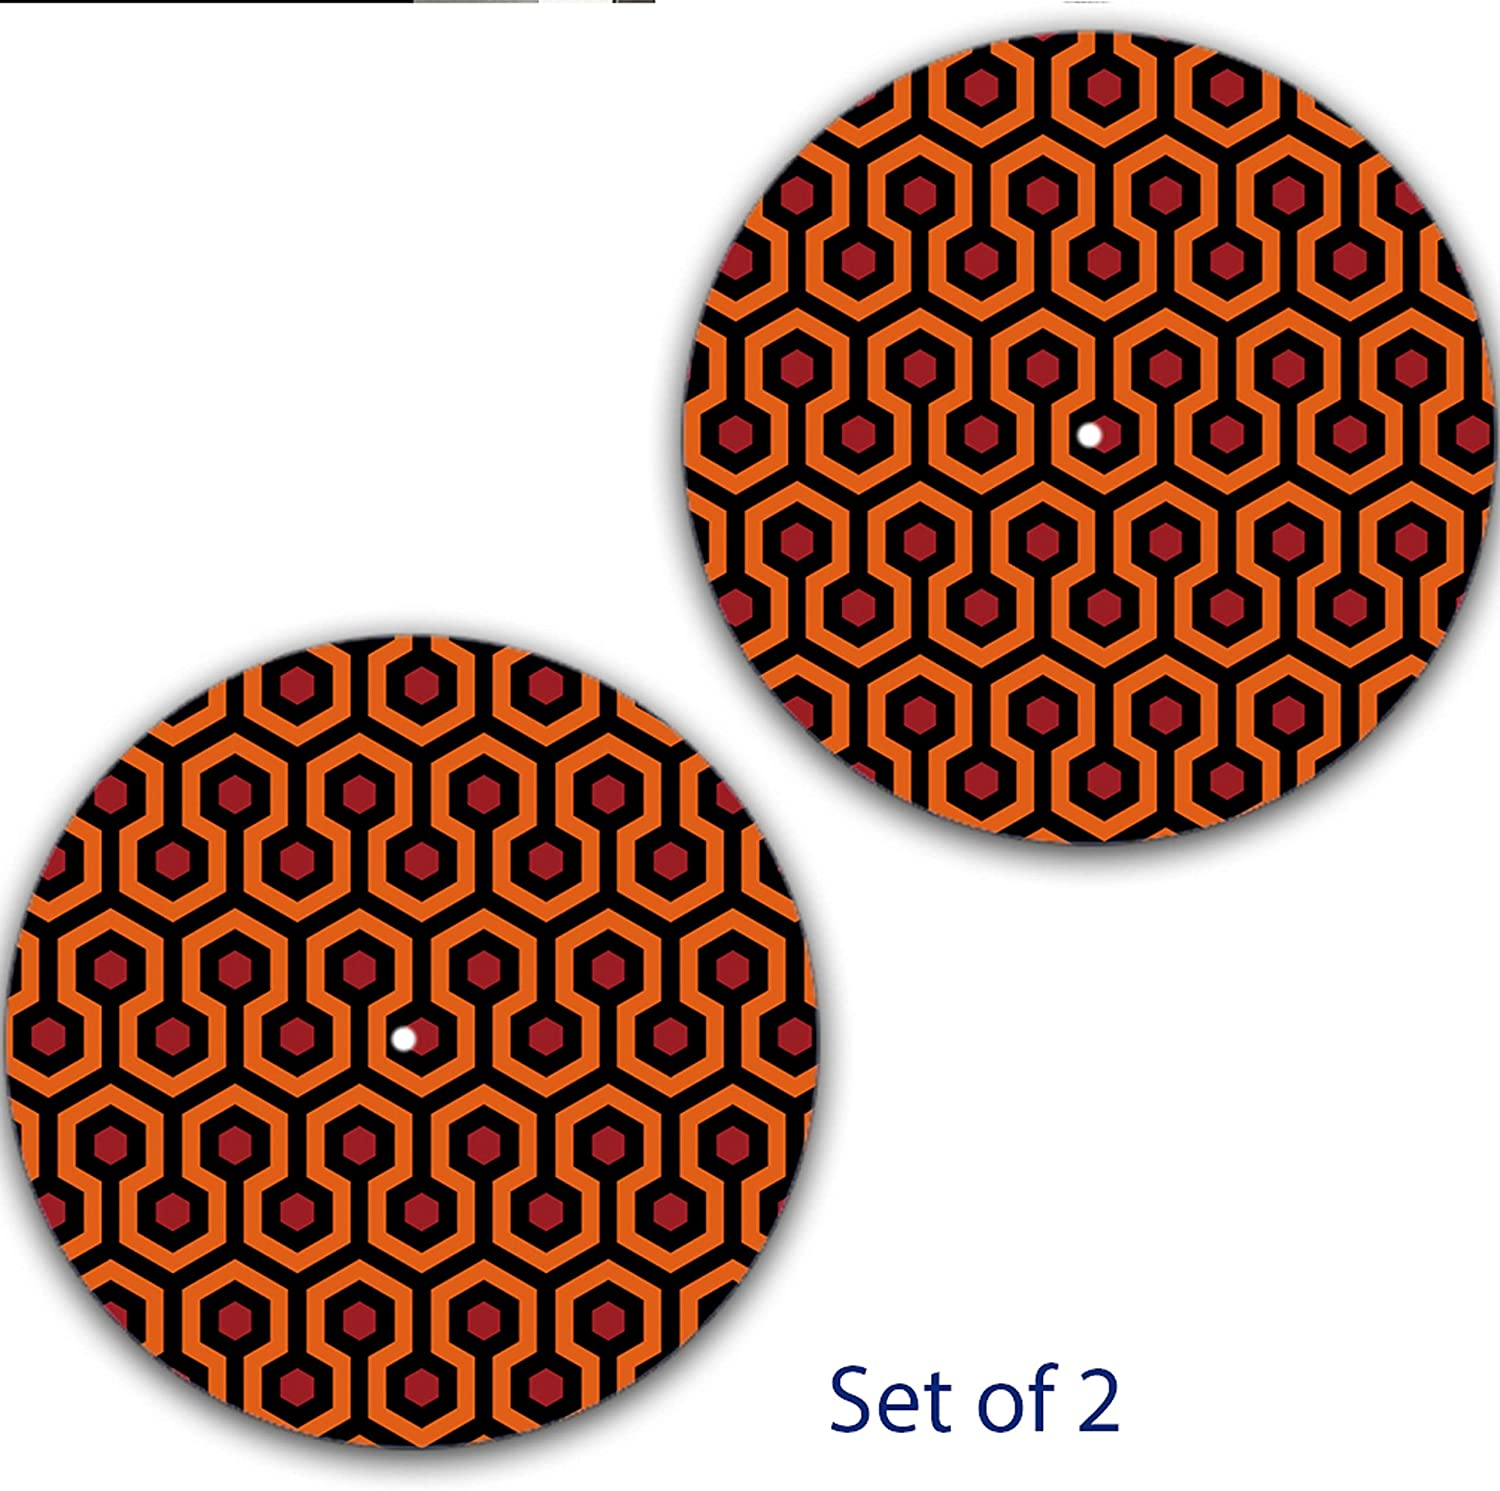 Set of Two Overlook Hotel Carpet The Shining DJ Slipmat 12 inch LP Scratch Pad Slip Mat Audiophile Vinyl Lovers